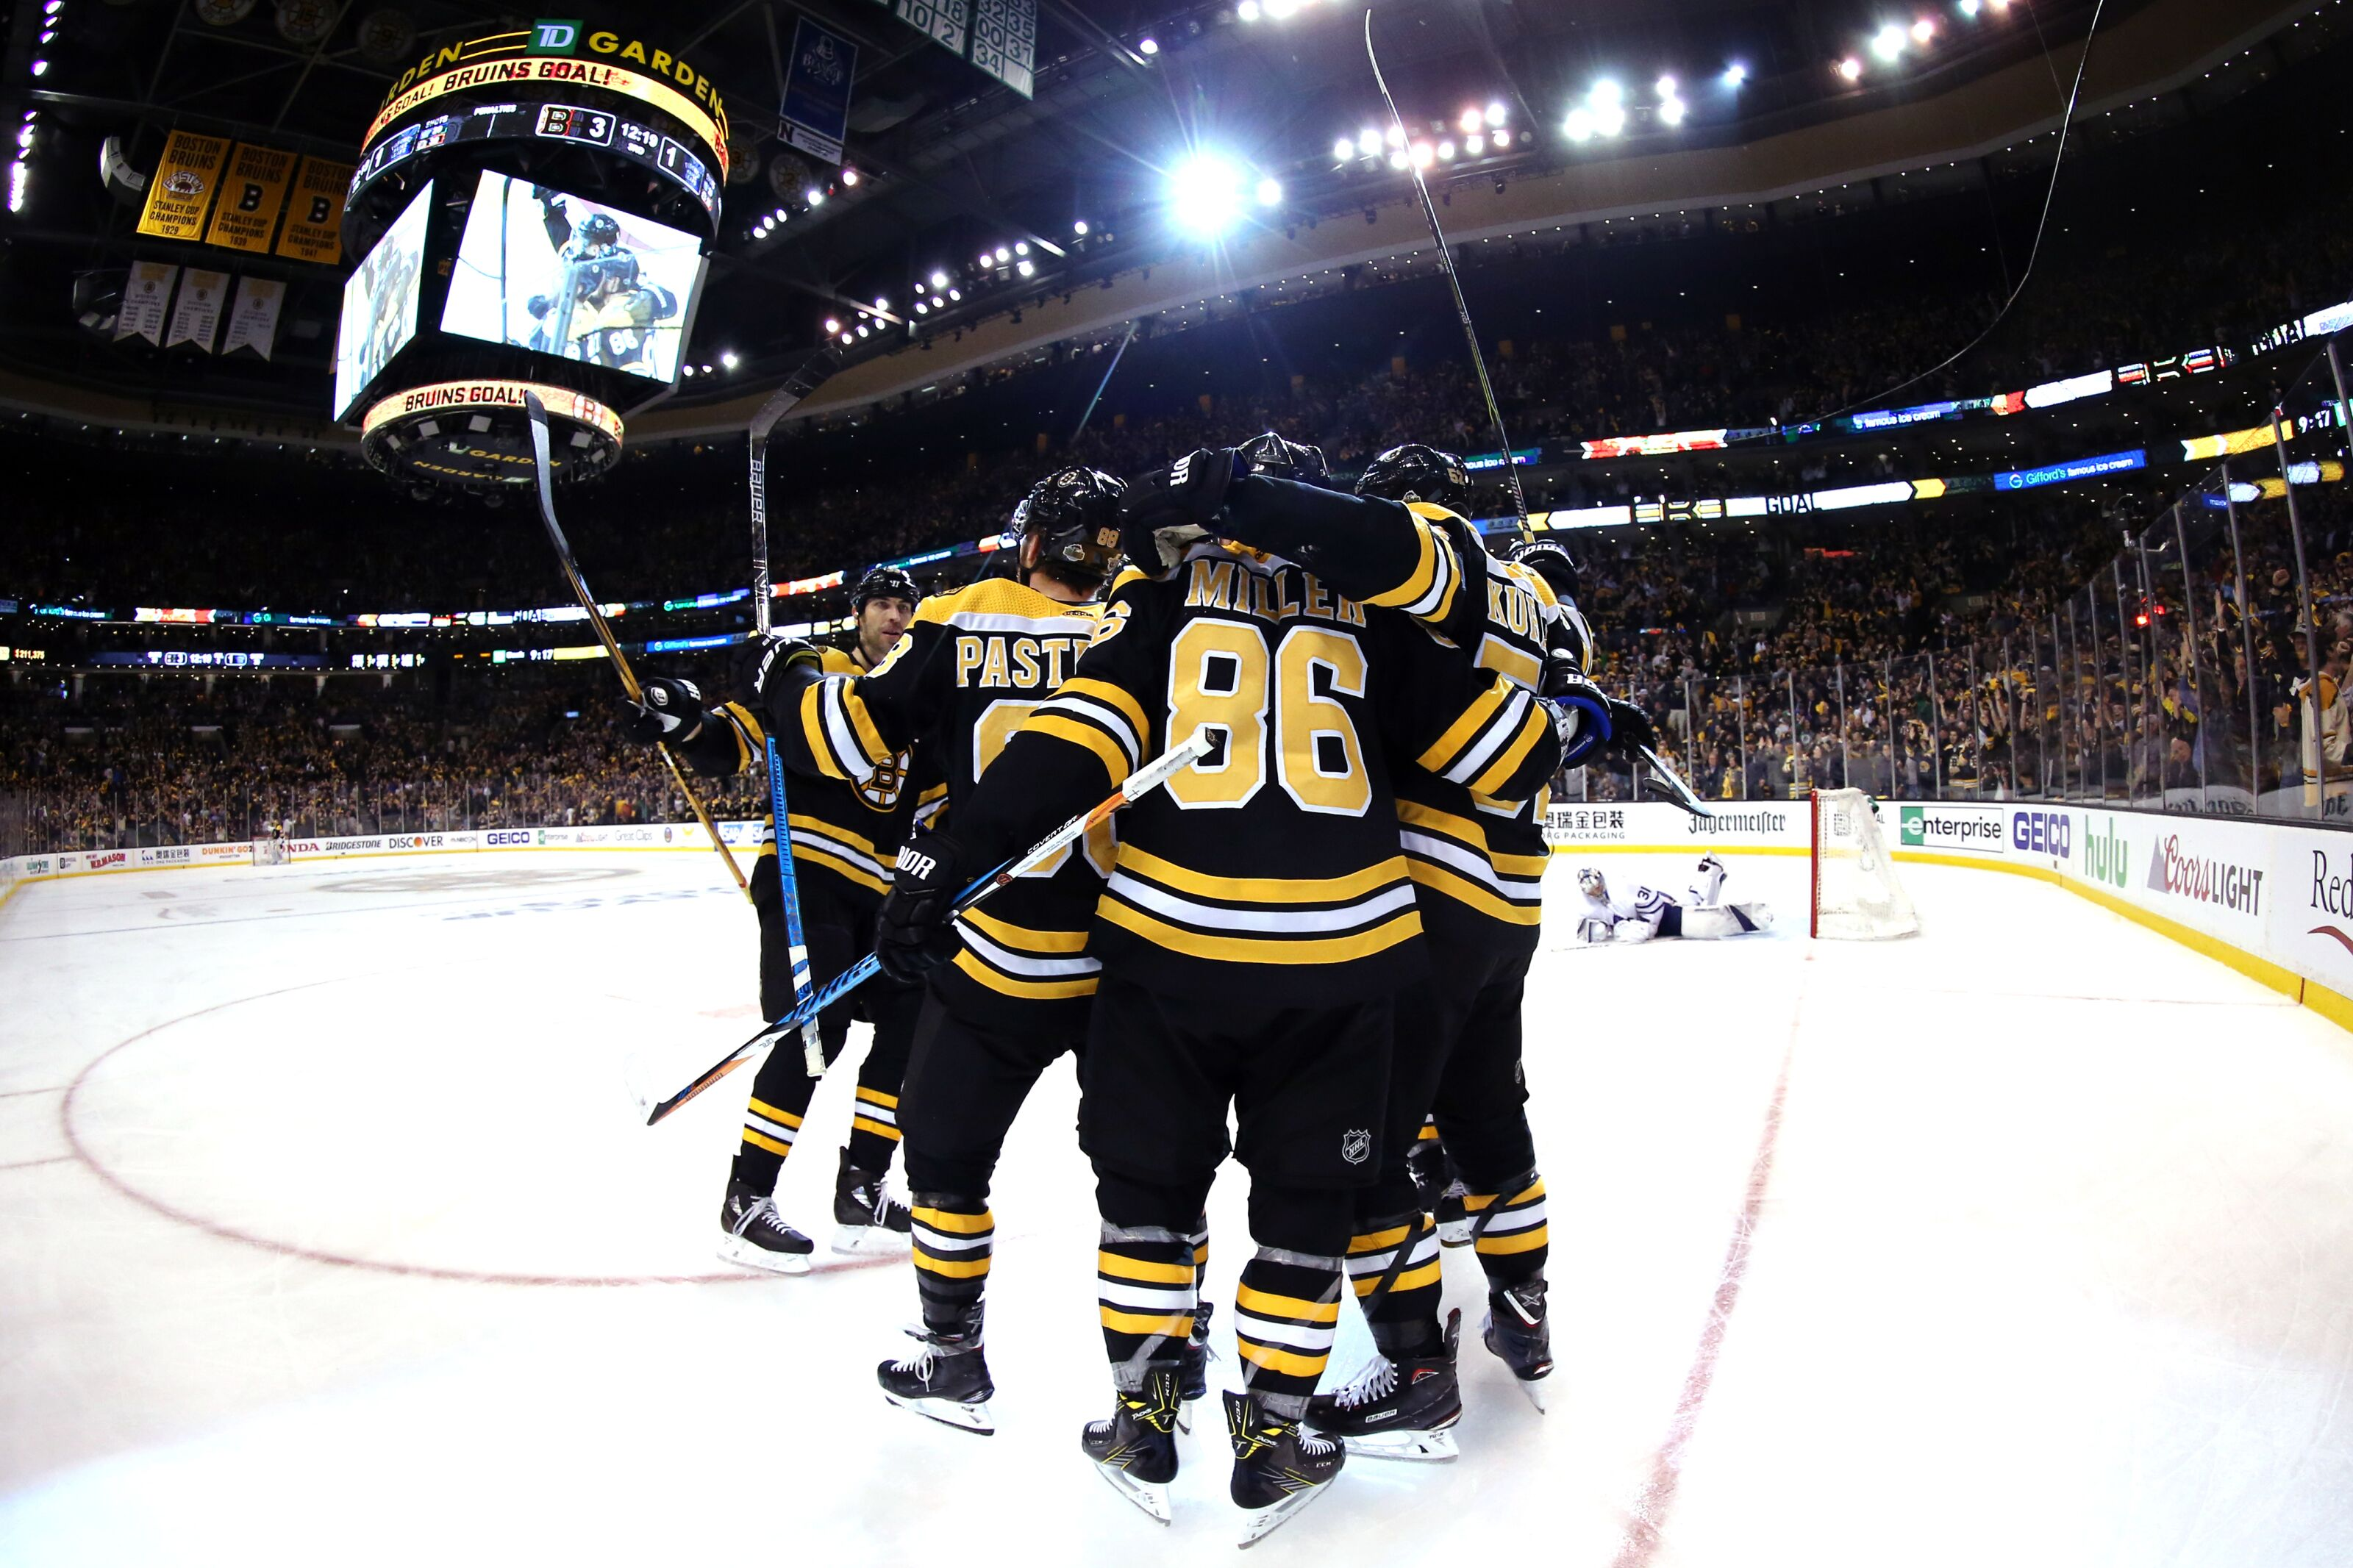 945519906-toronto-maple-leafs-v-boston-bruins-game-one.jpg